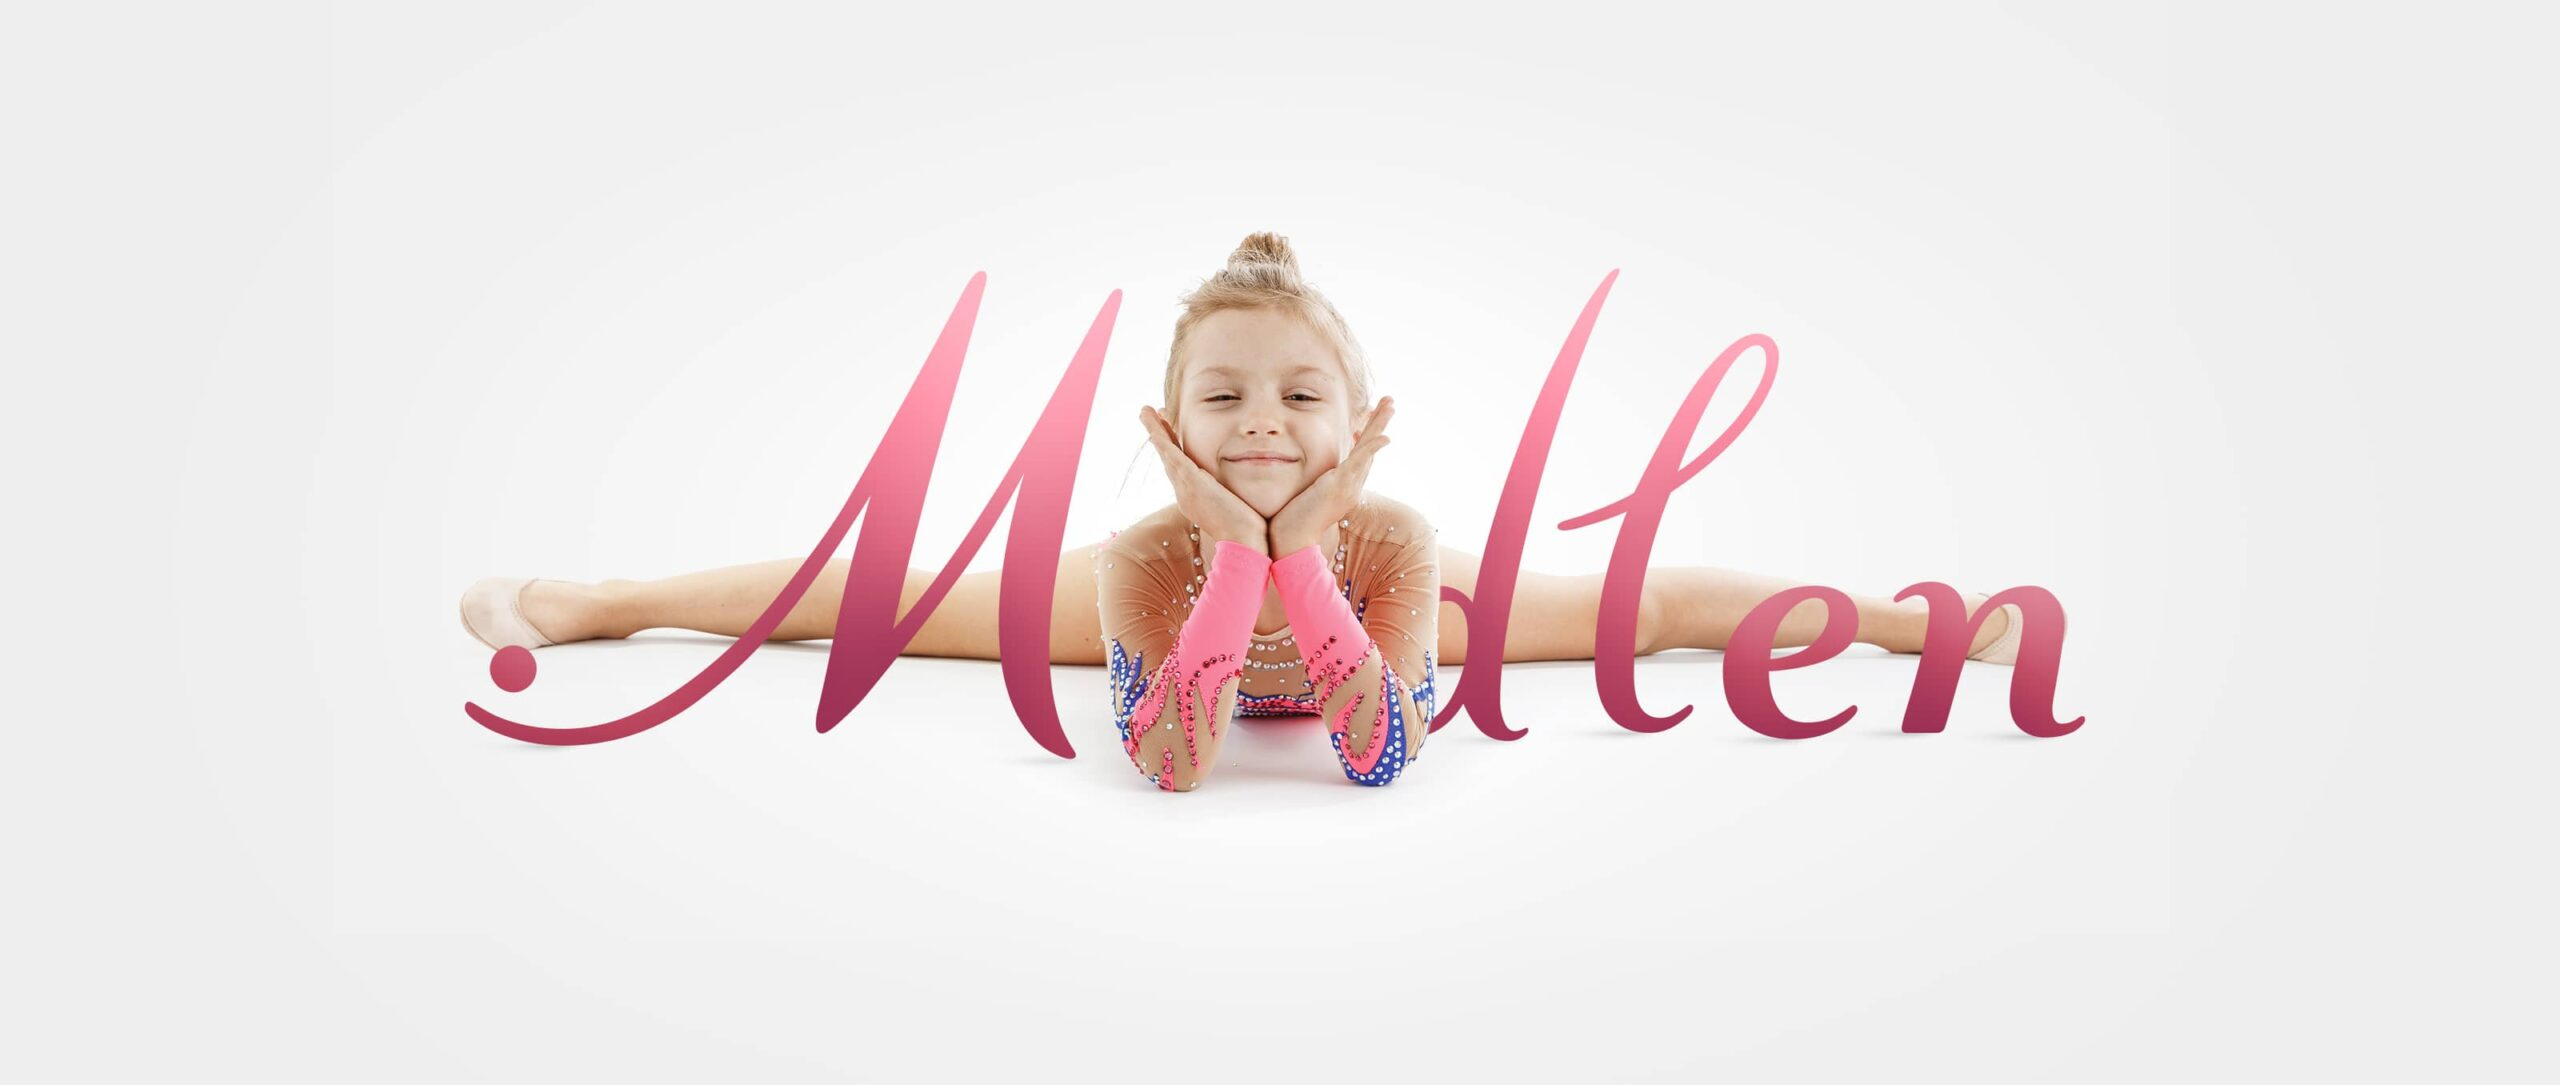 Beautiful young gymnast in twine against the Modlen logo